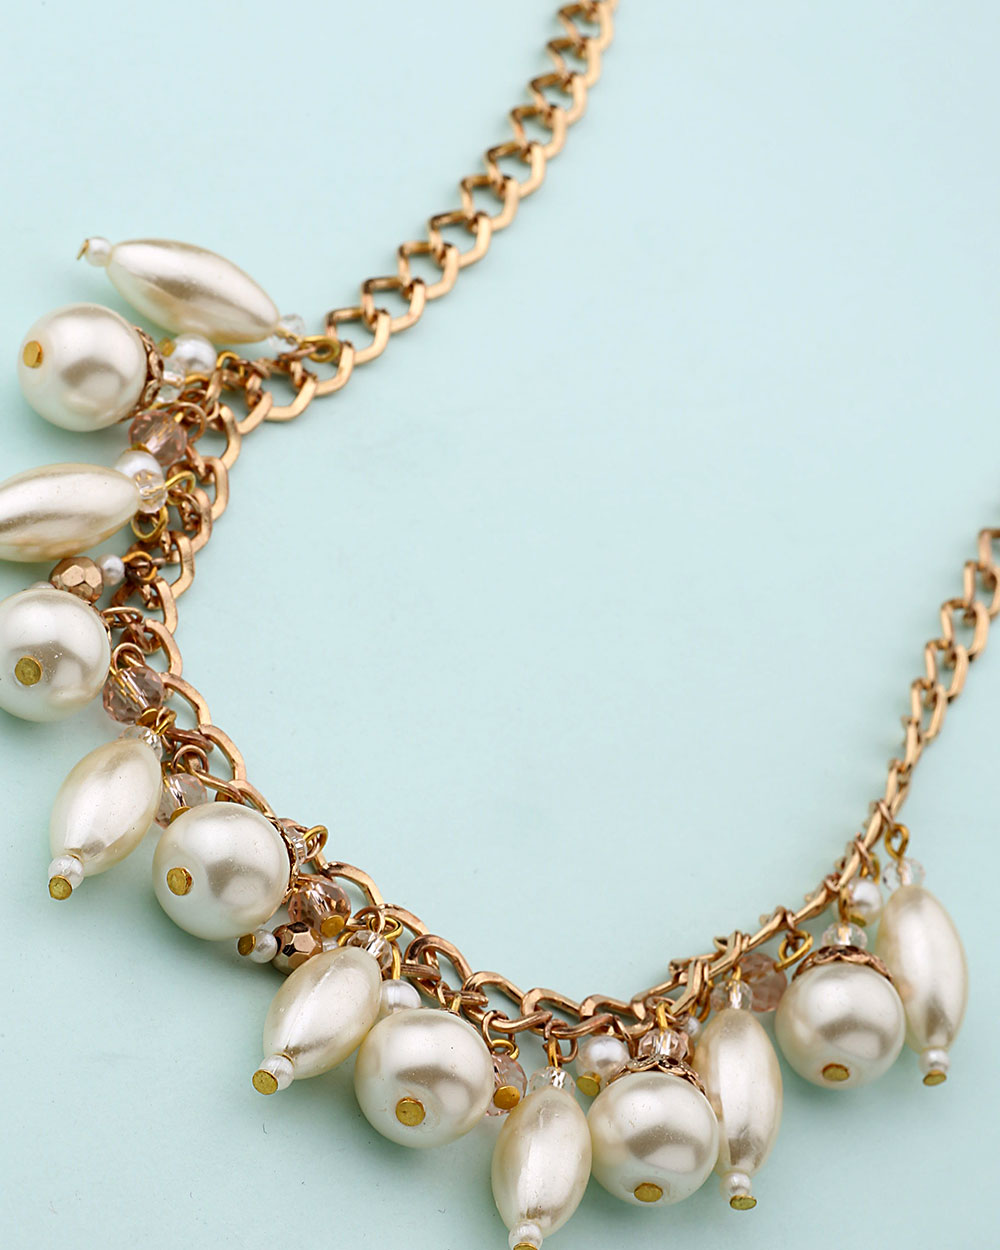 Buy Rose Gold Necklace Dangled With Pearl Beads Online India | Voylla